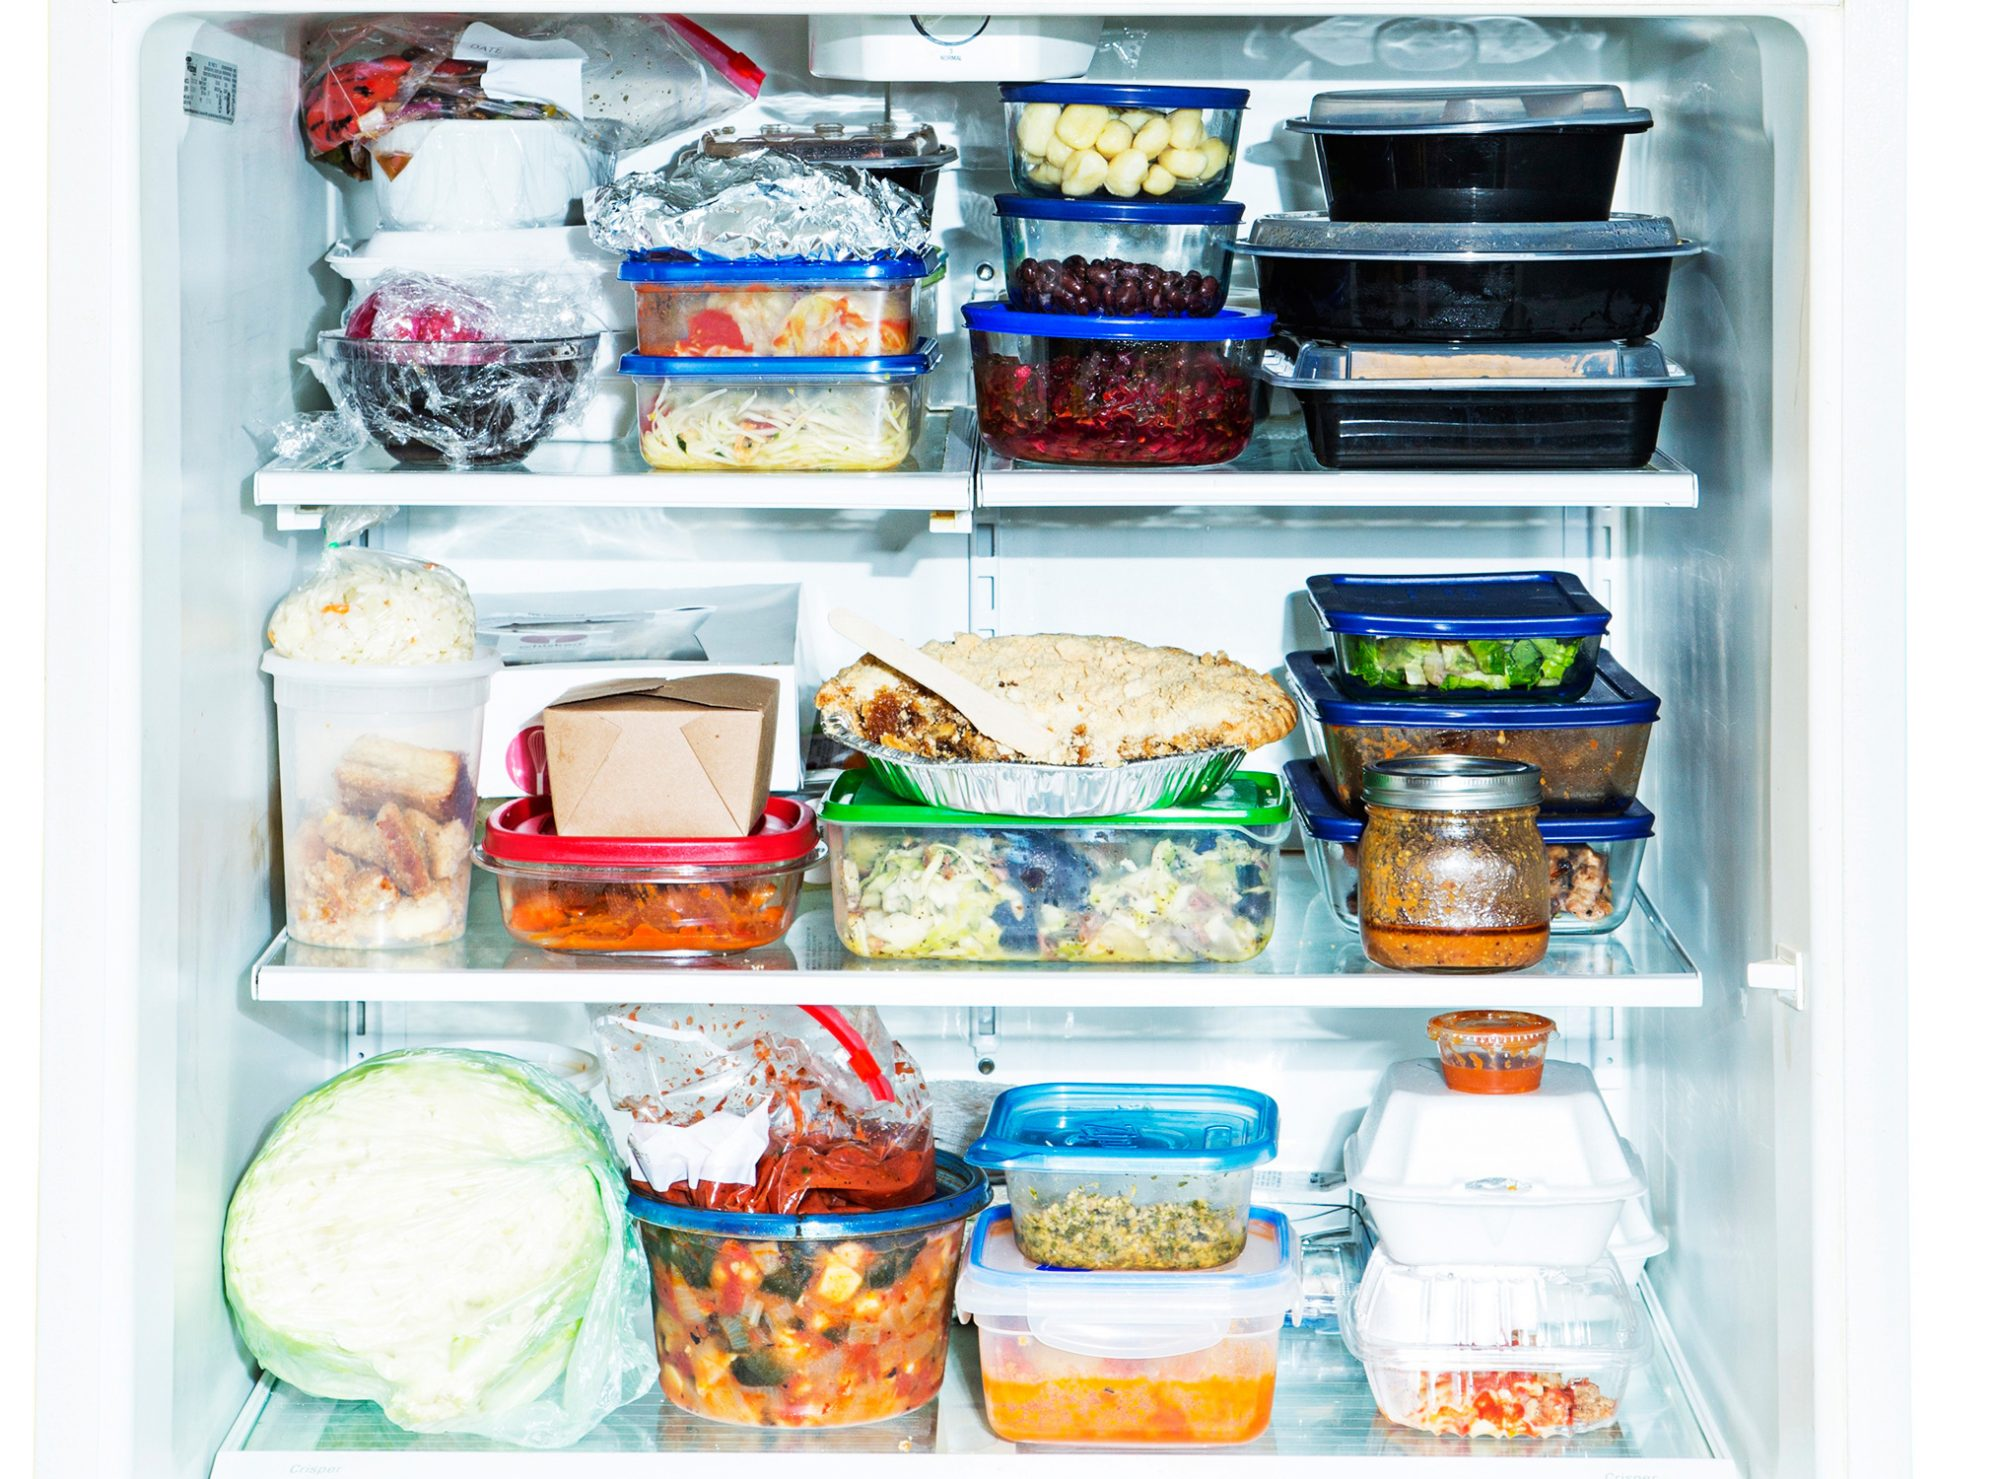 6 Ways to Get Your #FridgeGoals in Order